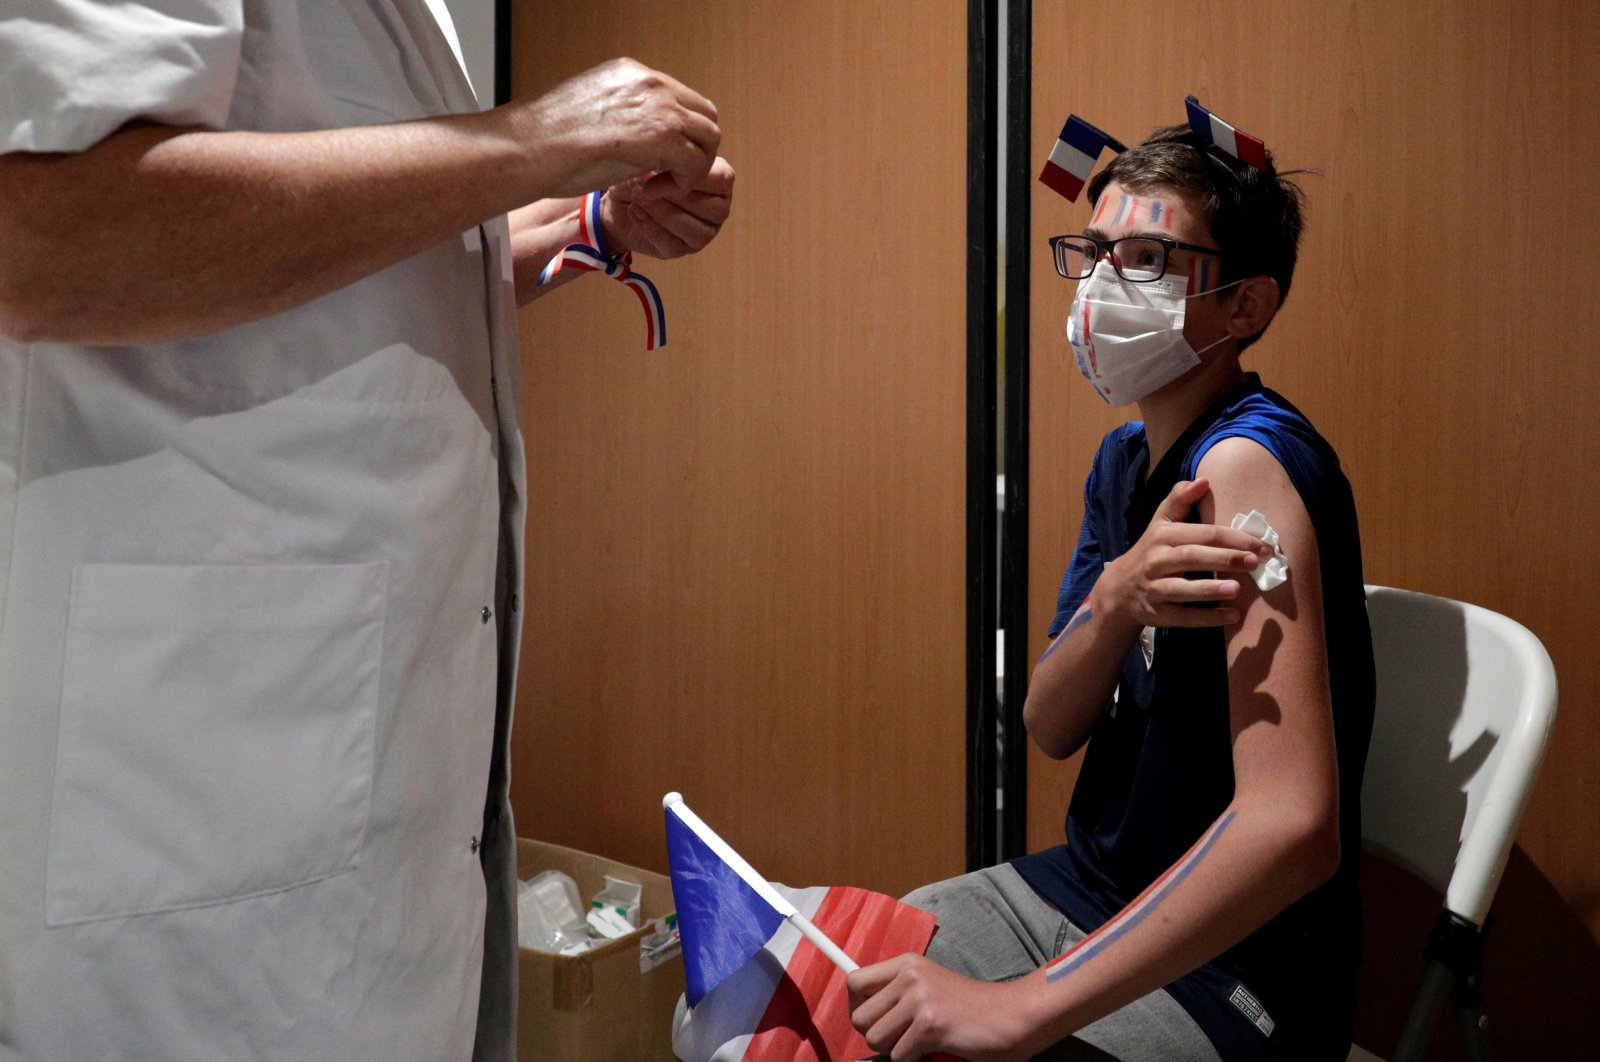 A French supporter receives a dose of the Pfizer COVID-19 vaccine during a vaccination drive at the Armand Peugeot Fan-zone, where fans watch the broadcast of the UEFA Euro 2020 Group F football match between France and Portugal in Poissy, outside Paris, France, on June 23, 2021. (AFP Photo)